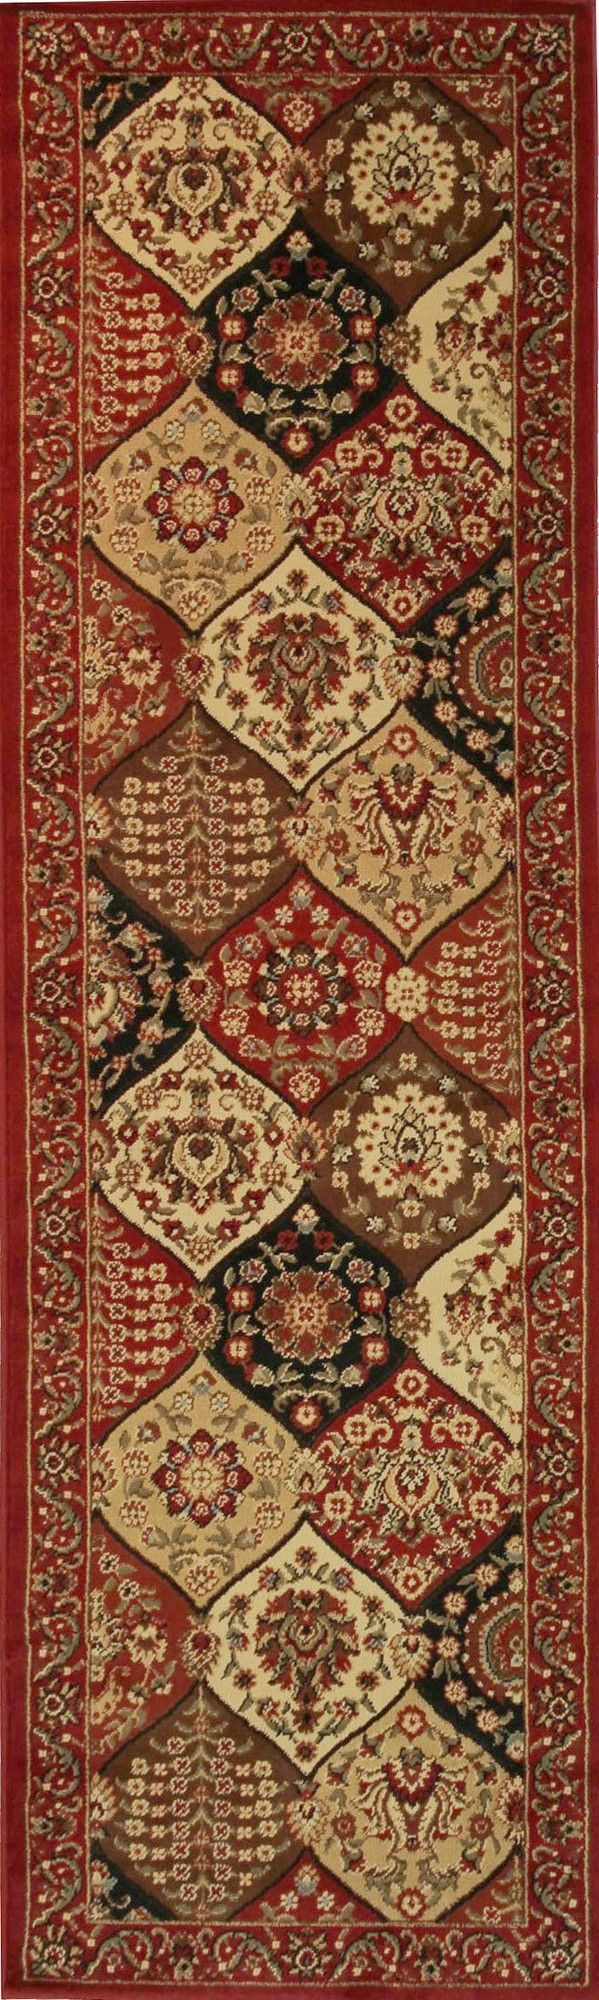 Barclay Wentworth Panel Red Area Rug